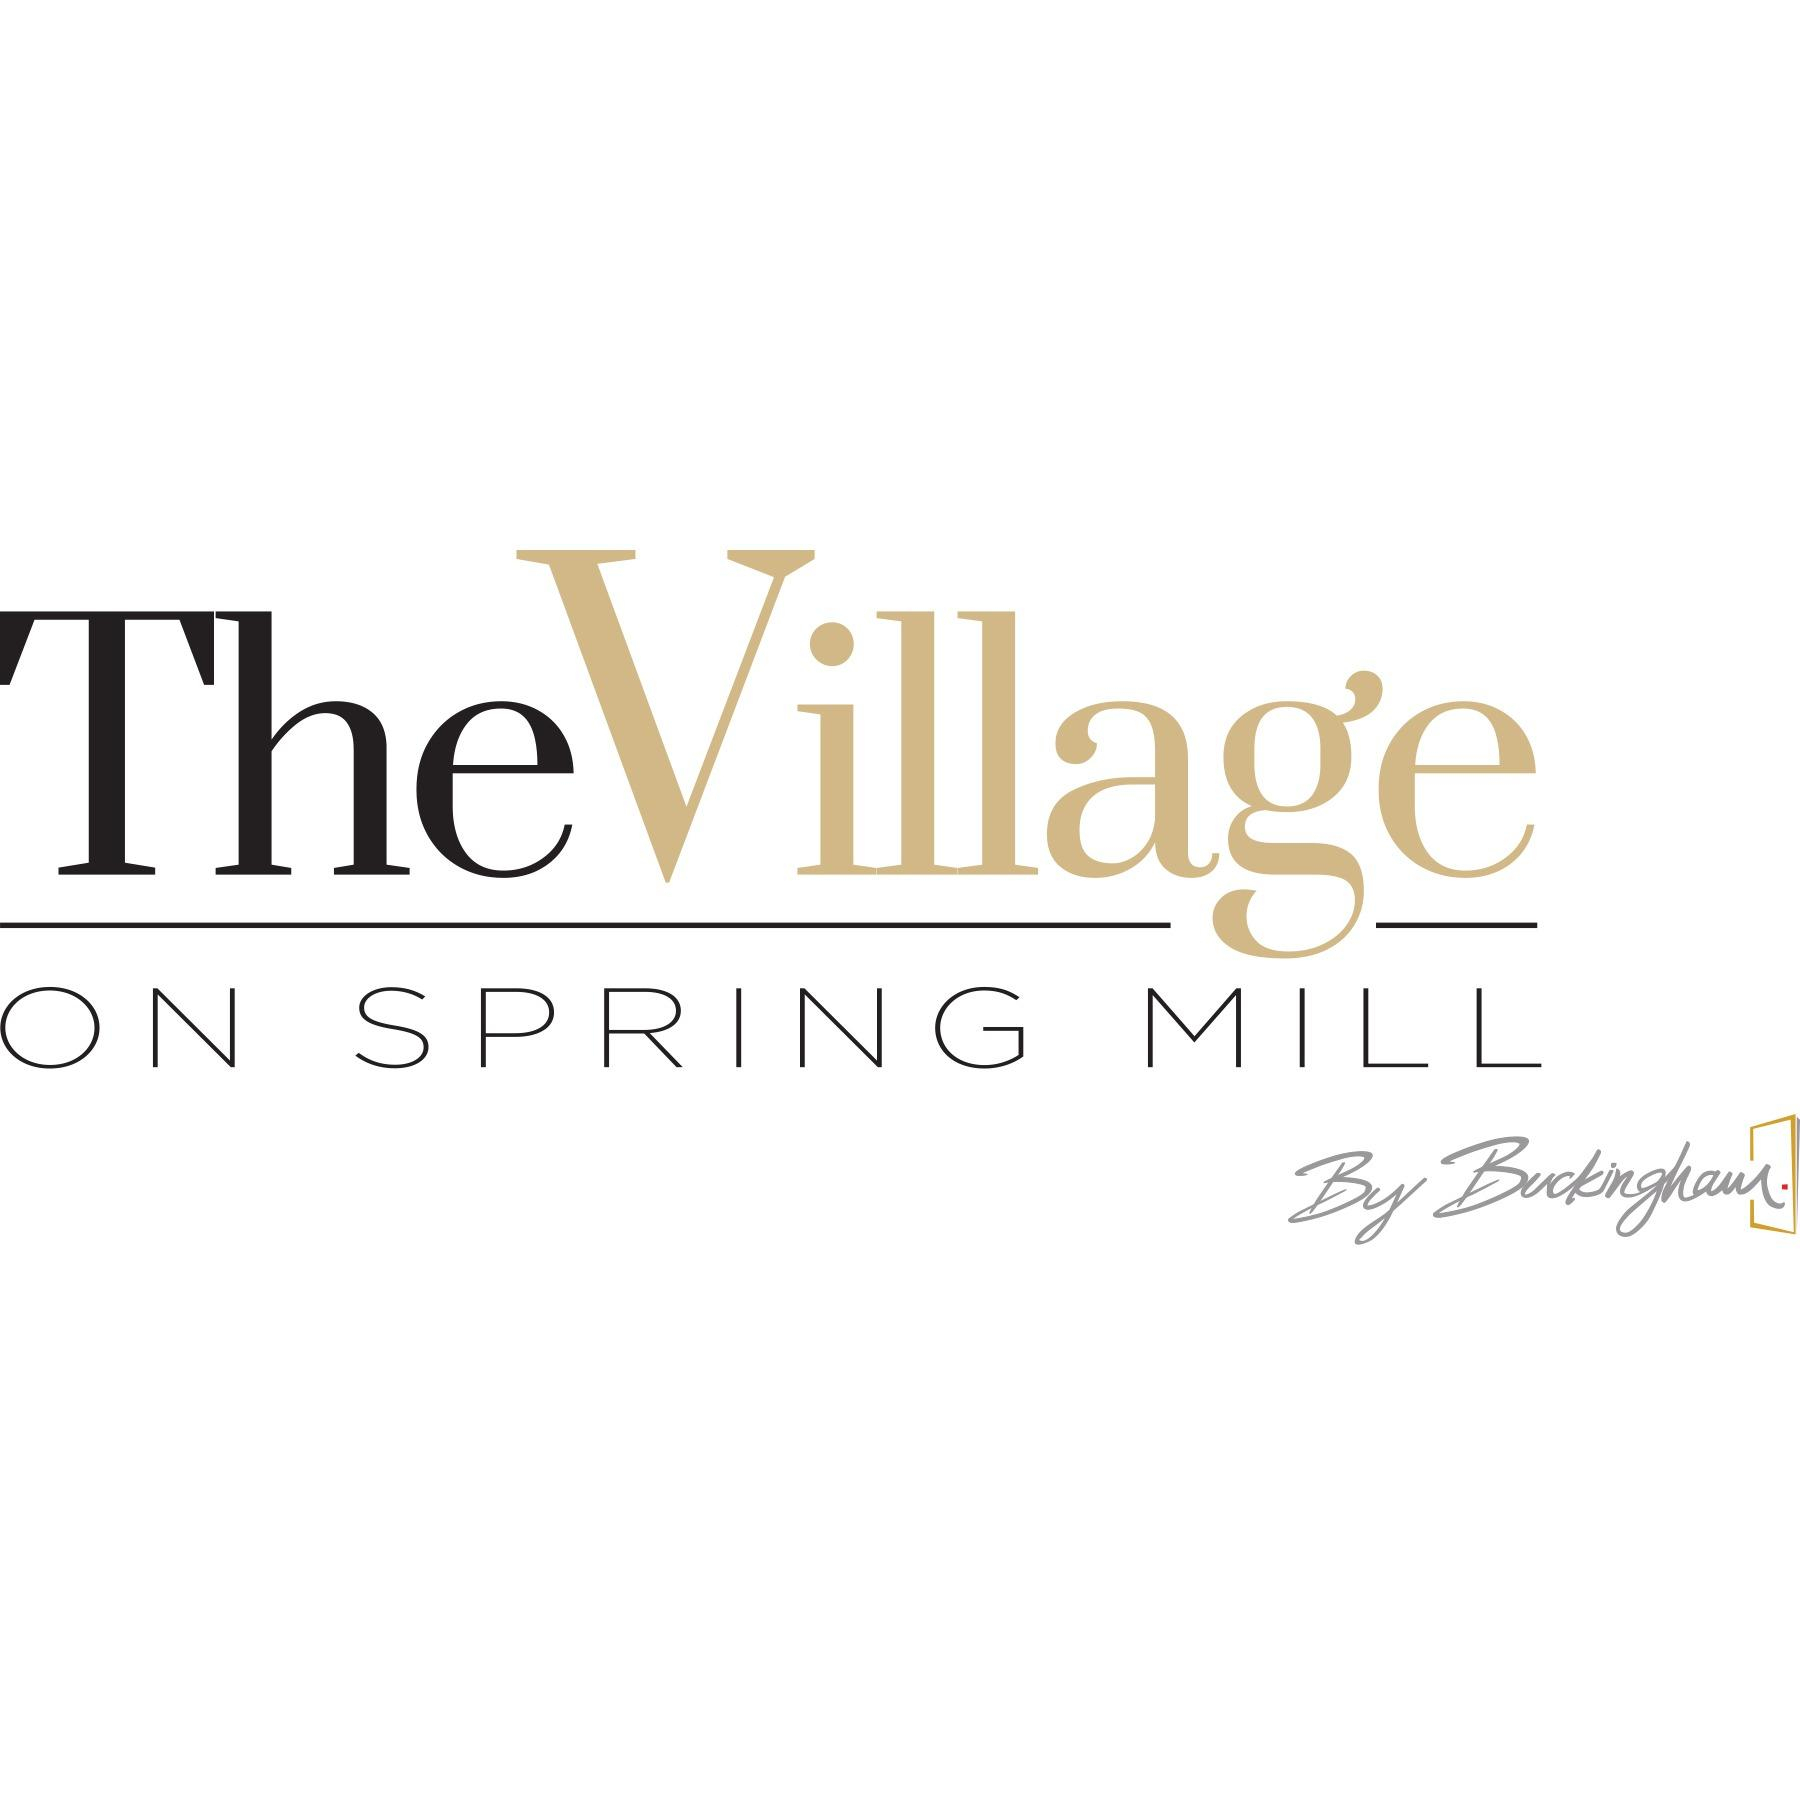 The Village Apartments on Spring Mill